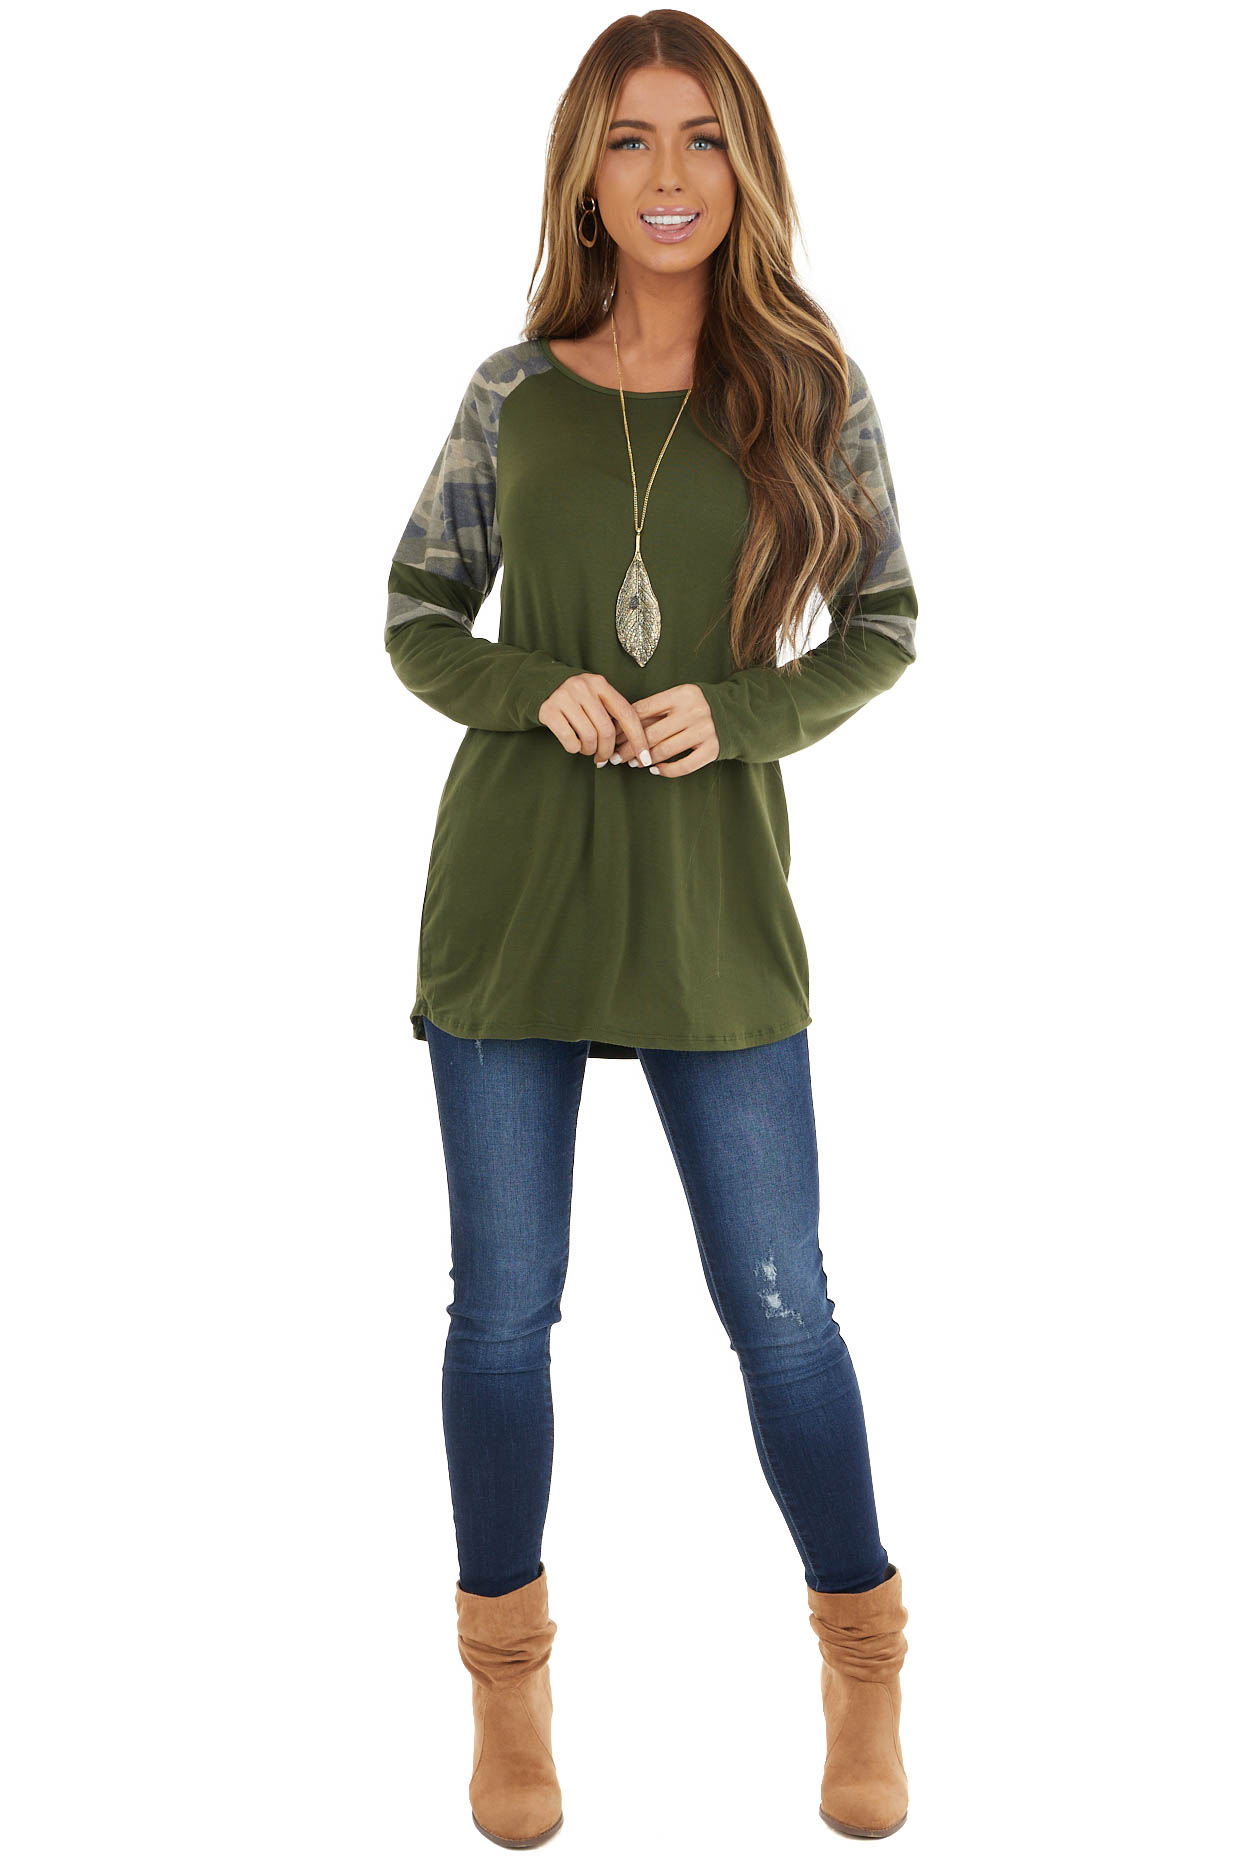 Olive Stretchy Knit Top with Raglan Camo Print Sleeves